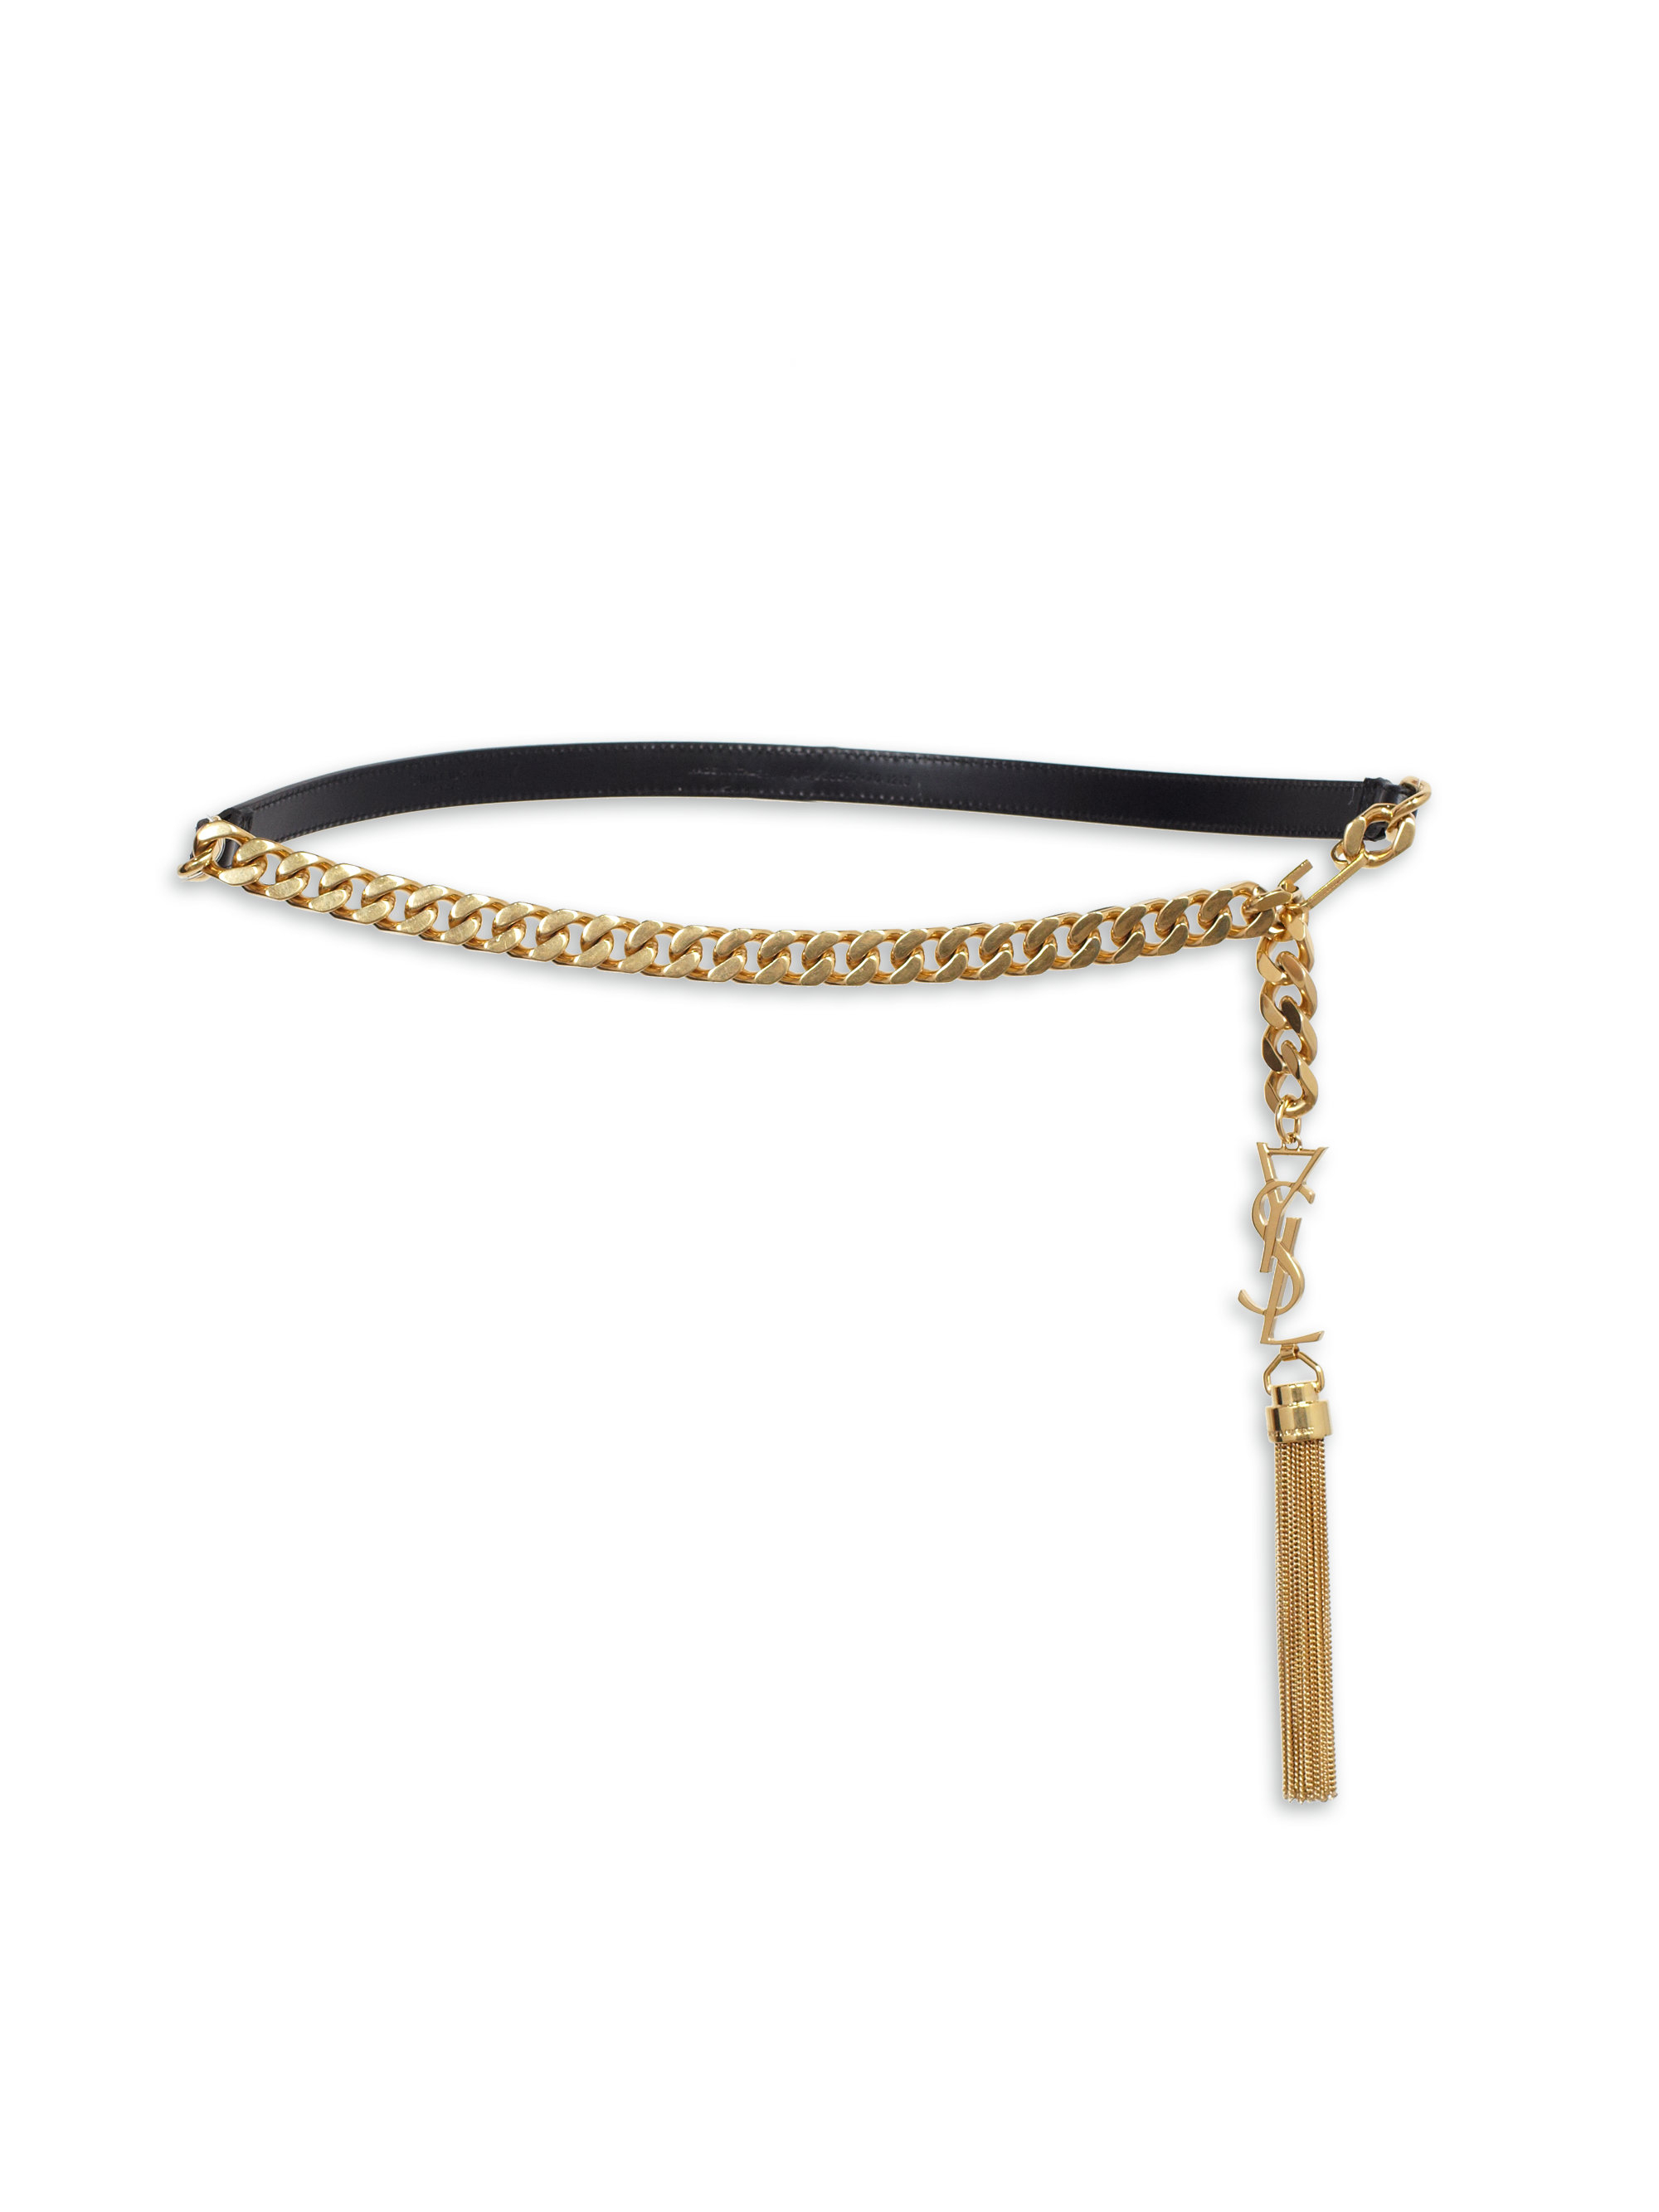 6a436614bfe Saint Laurent Ysl Leather Chain Belt in Metallic - Lyst